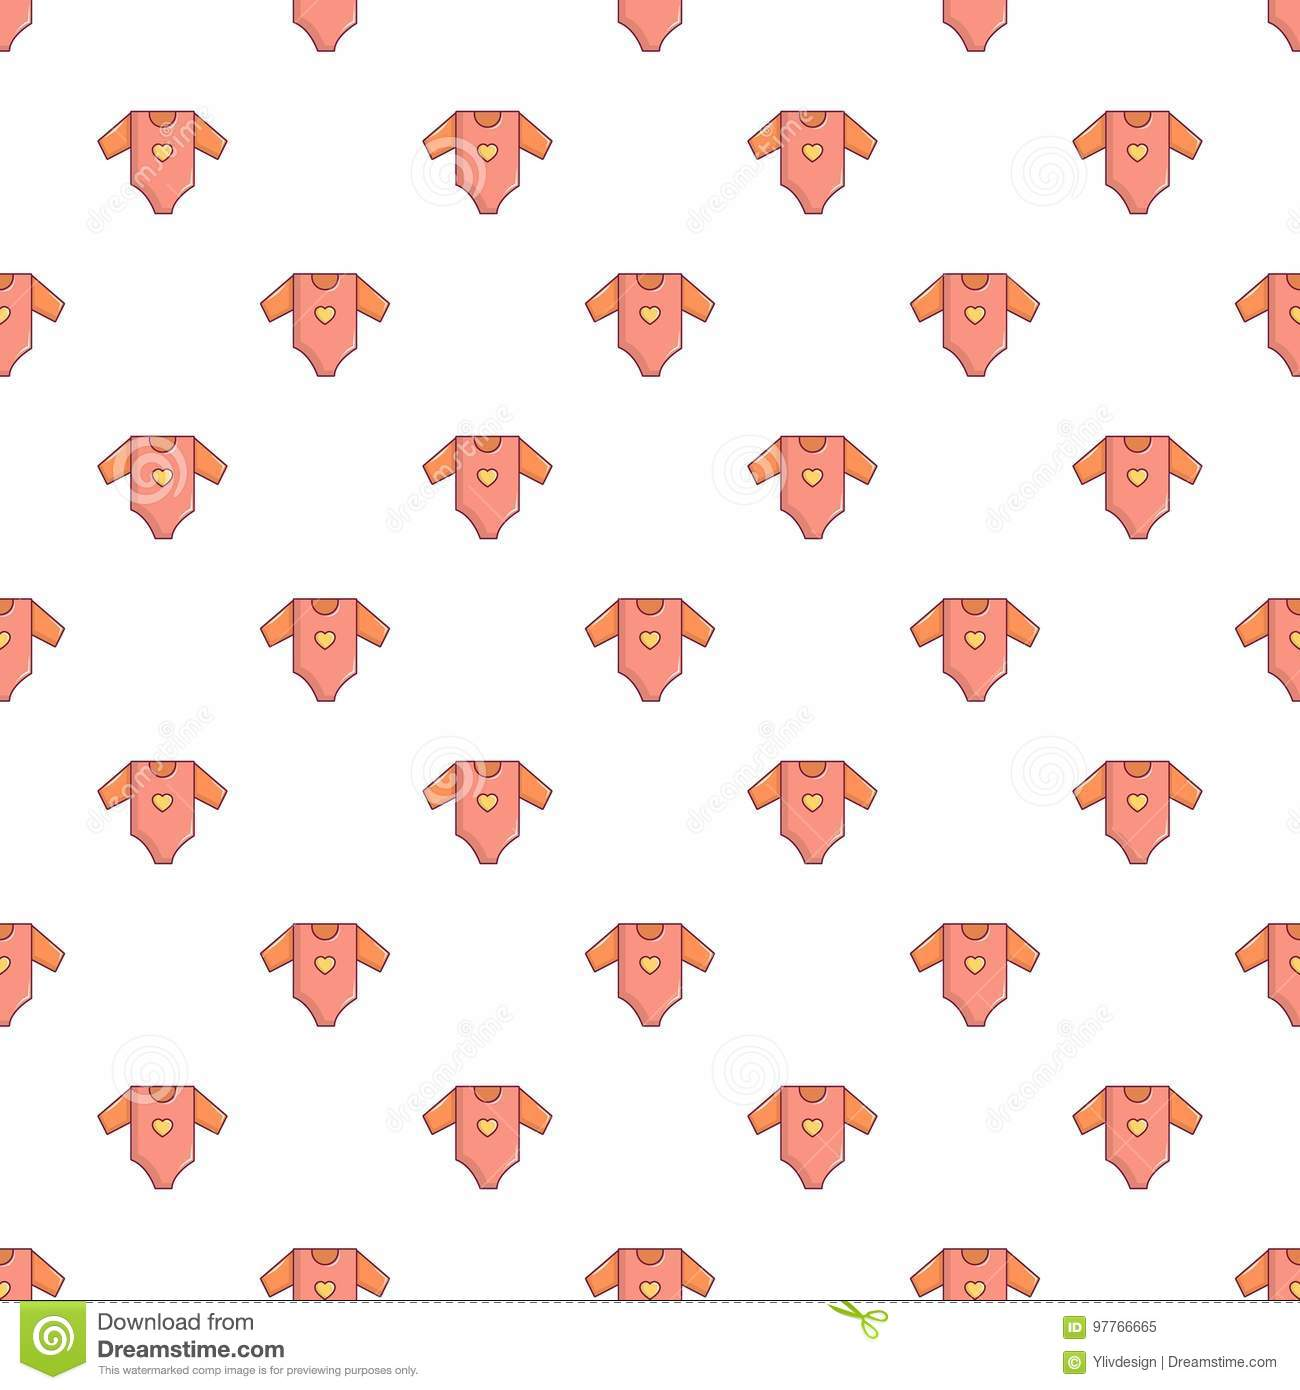 72cdd8d039f9 Baby Girl Clothes Pattern Seamless Stock Vector - Illustration of ...